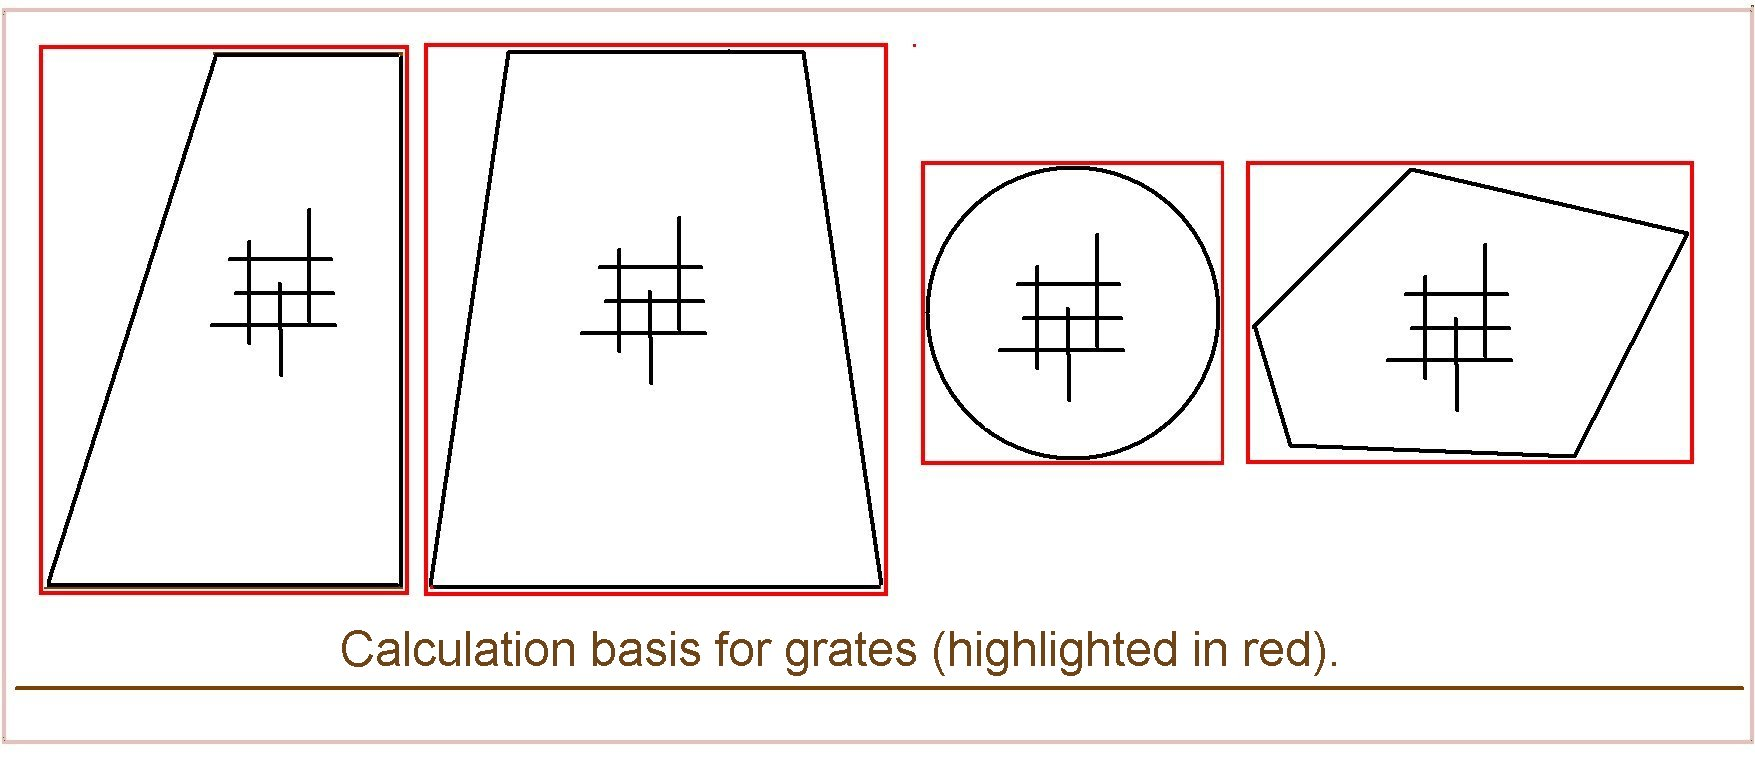 Calculation basis for grates